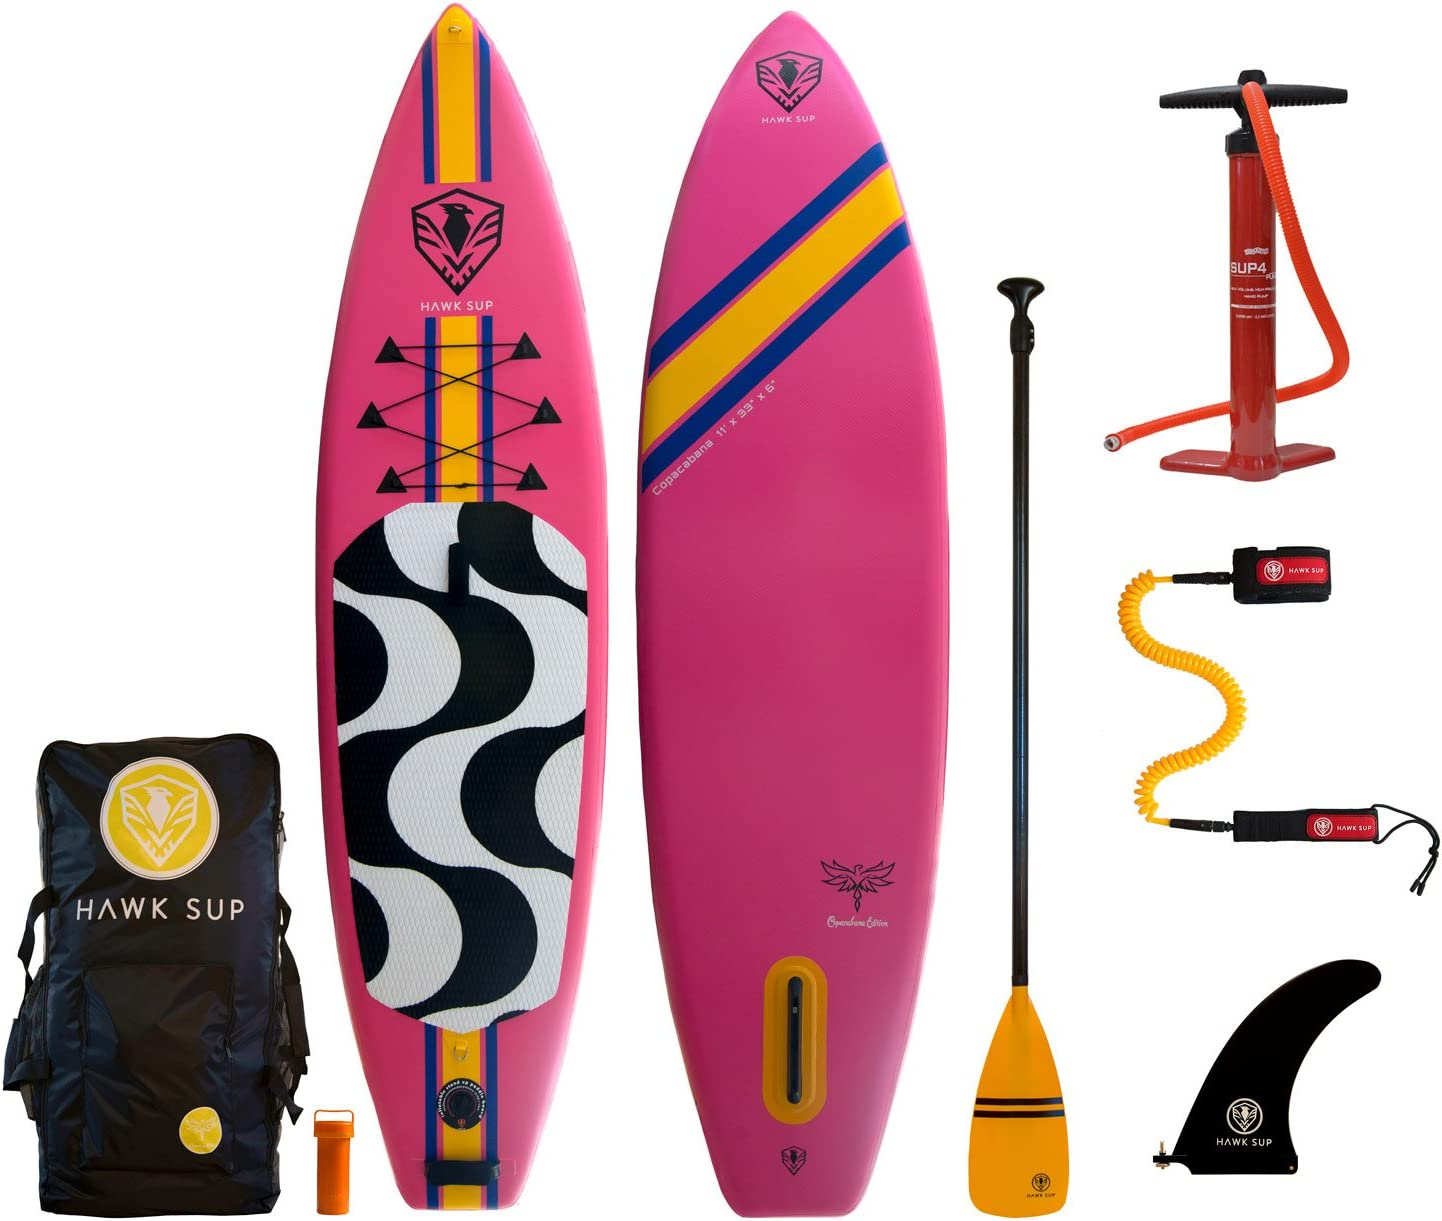 HAWK SUP Copacabana 11 Inflatable Stand Up Paddle Board Package 11 x 33 x 6 iSUP, Bravo Hand Pump and 3 Piece Paddle, Travel Backpack